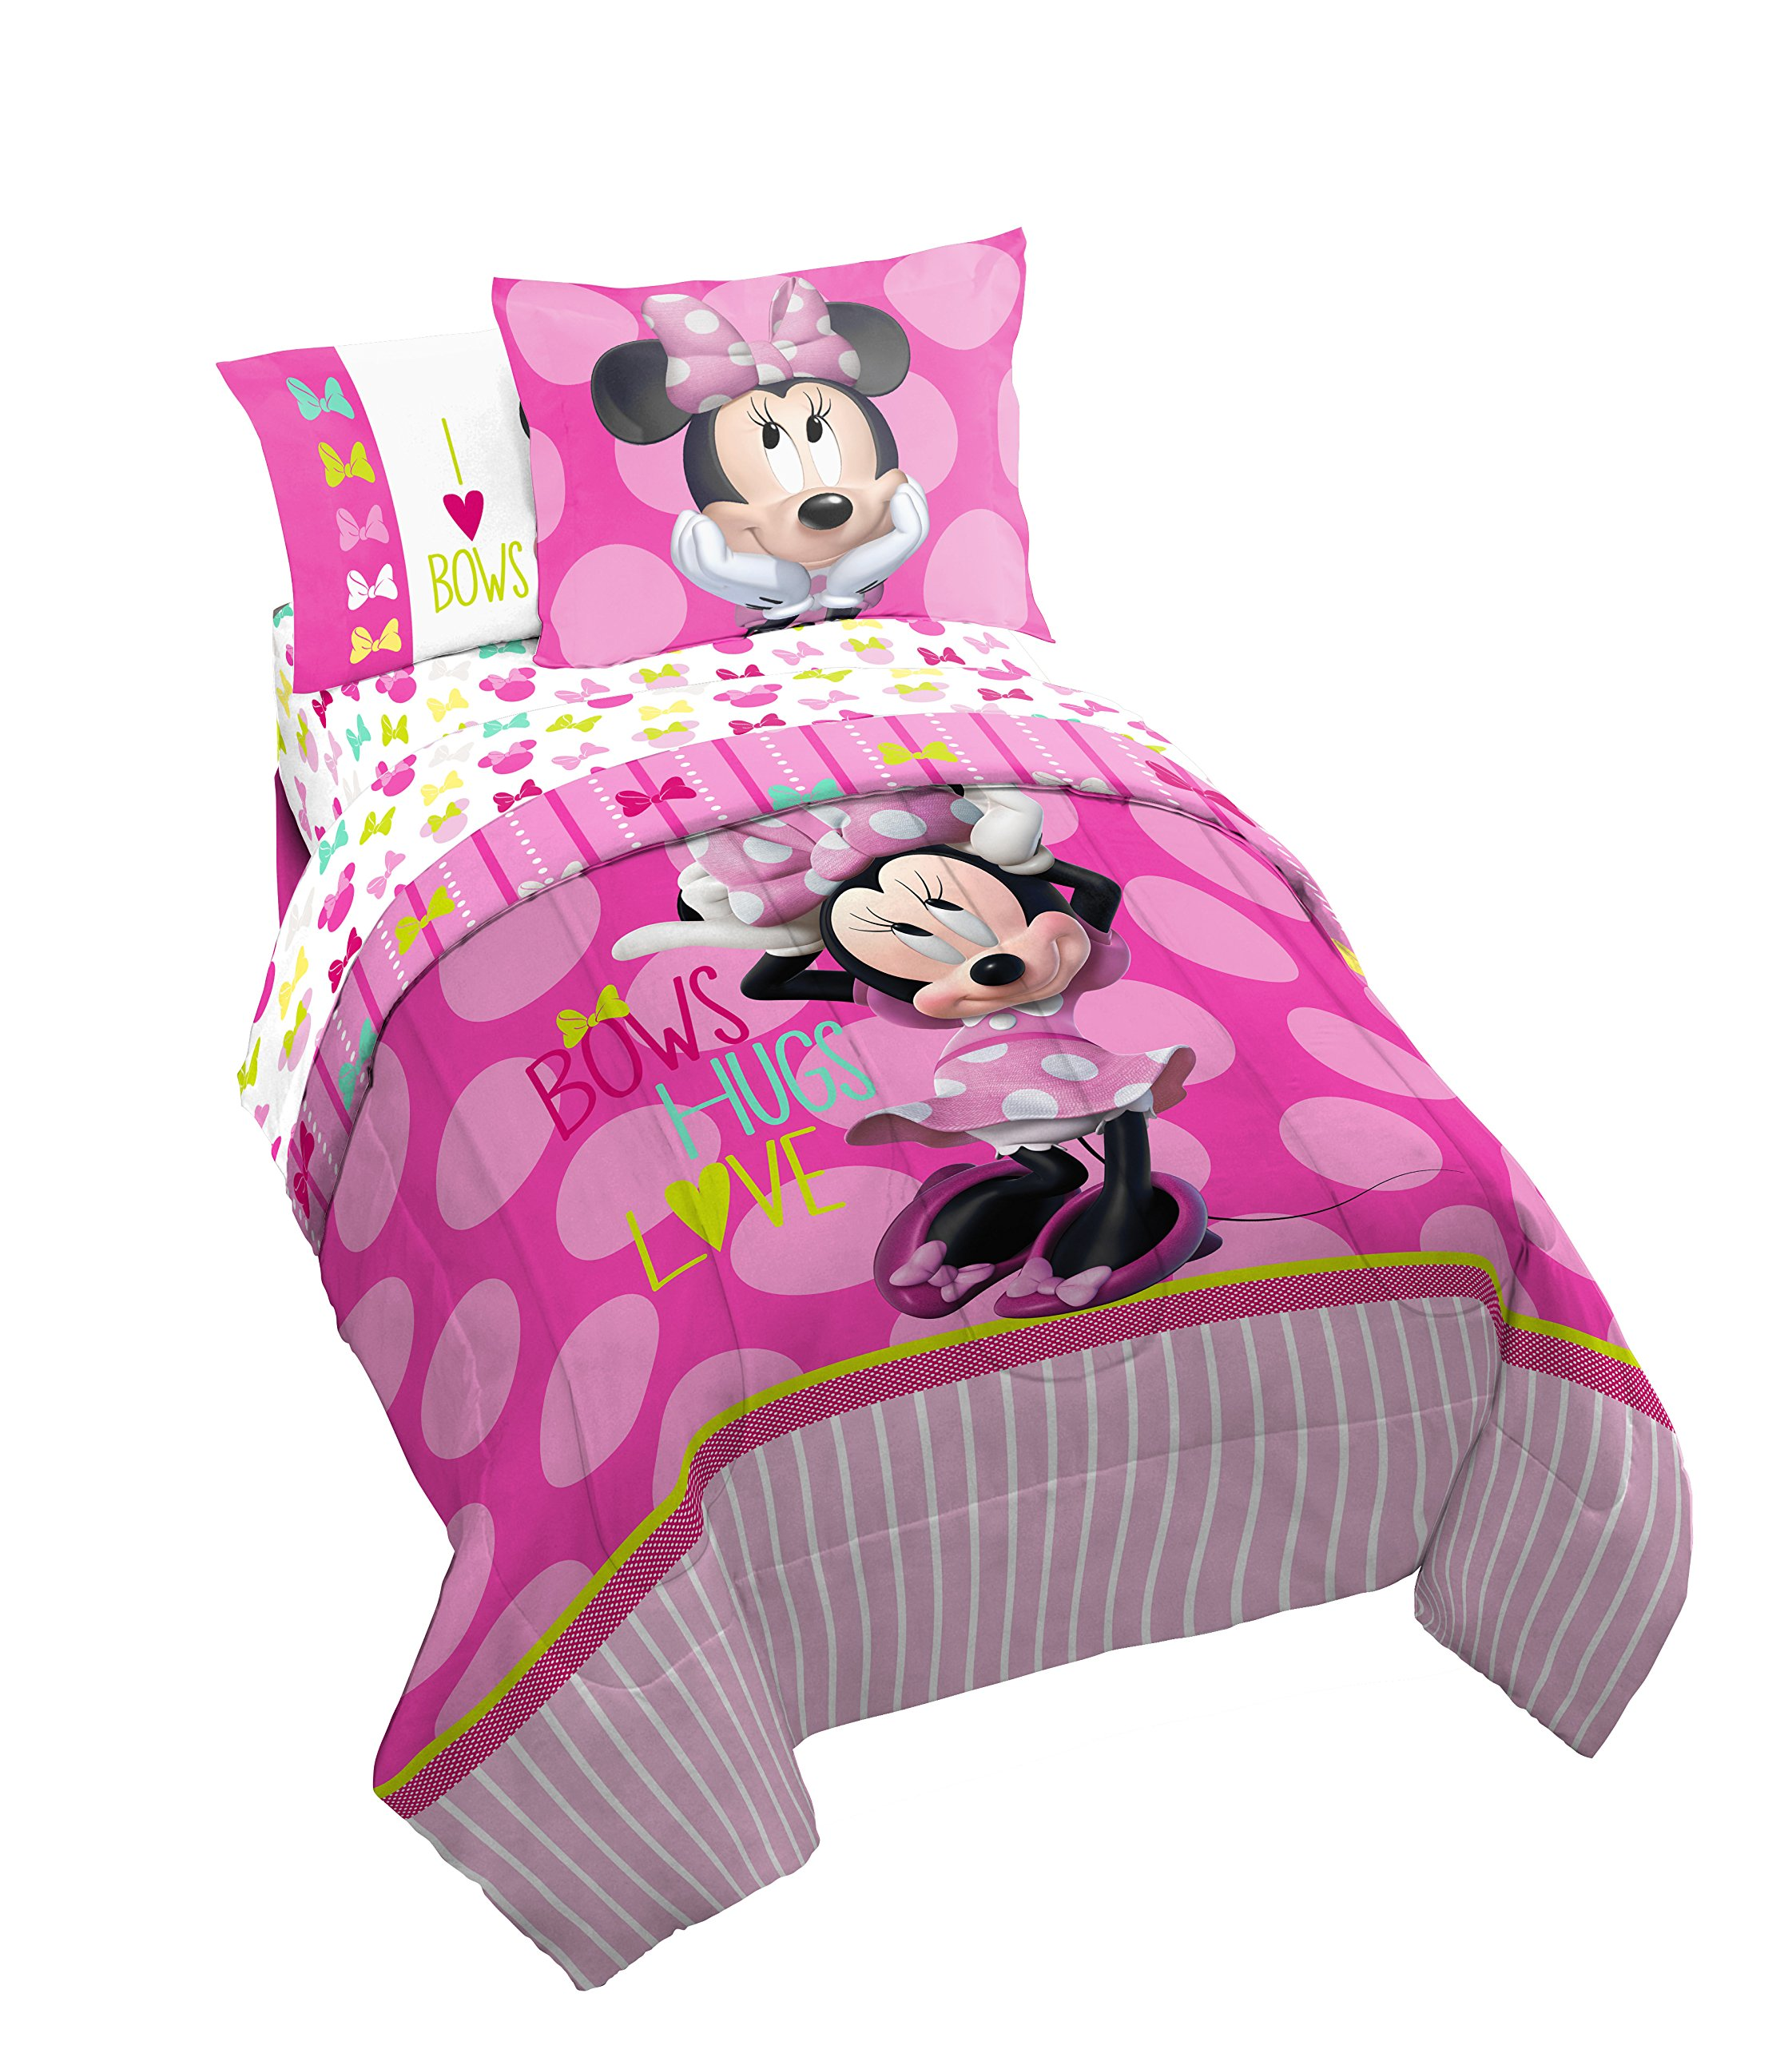 Disney Minnie Mouse Bigger Bow Twin Comforter - Super Soft Kids Reversible Bedding features Minnie Mouse - Fade Resistant Polyester Includes 1 Bonus Sham (Official Product)